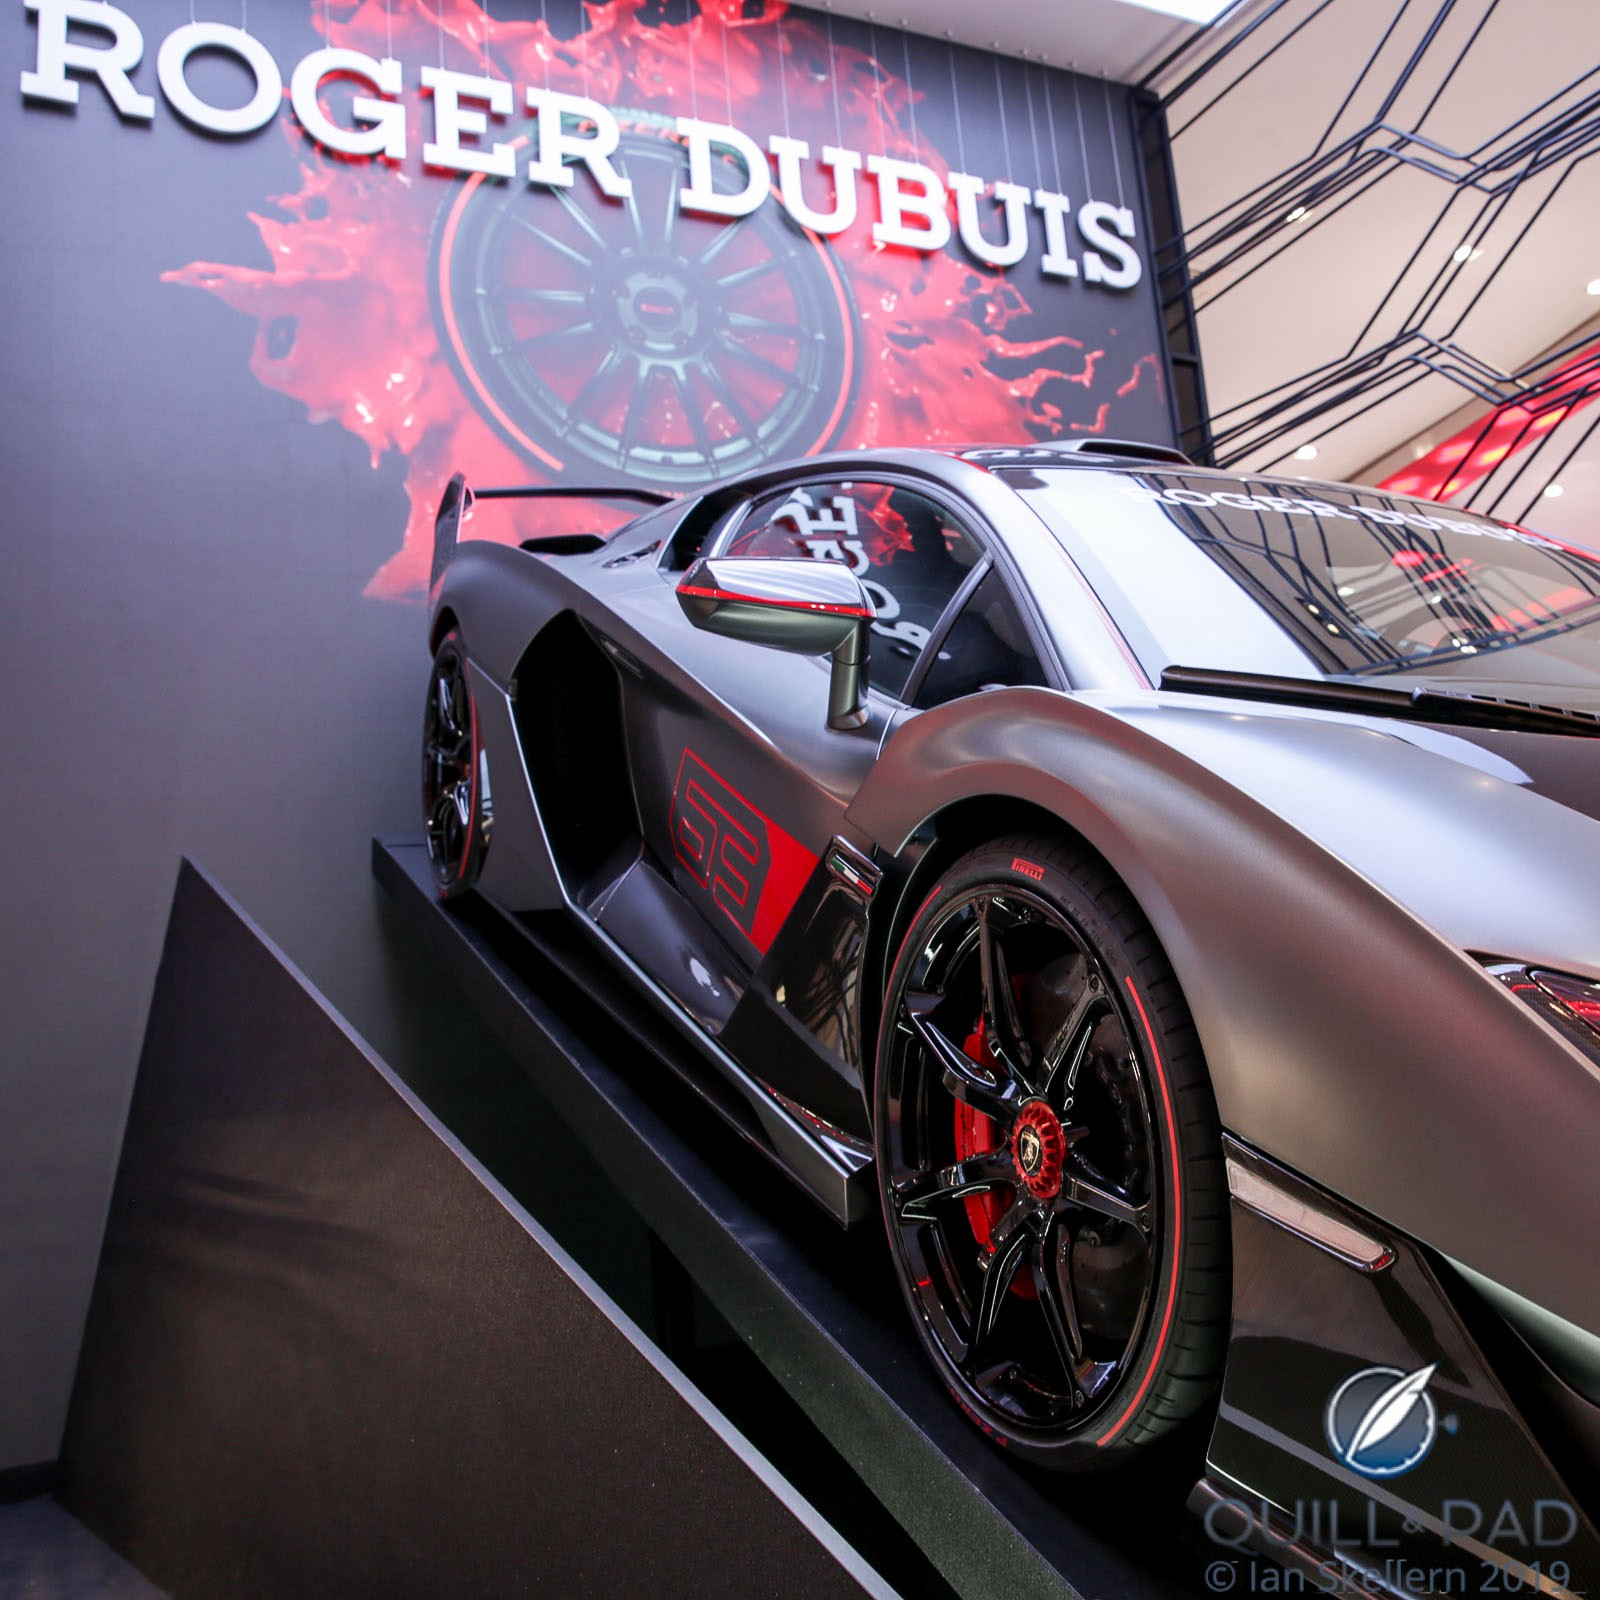 Lamborghini Huracán Performante at the Roger Dubuis stand at the 2019 SIHH